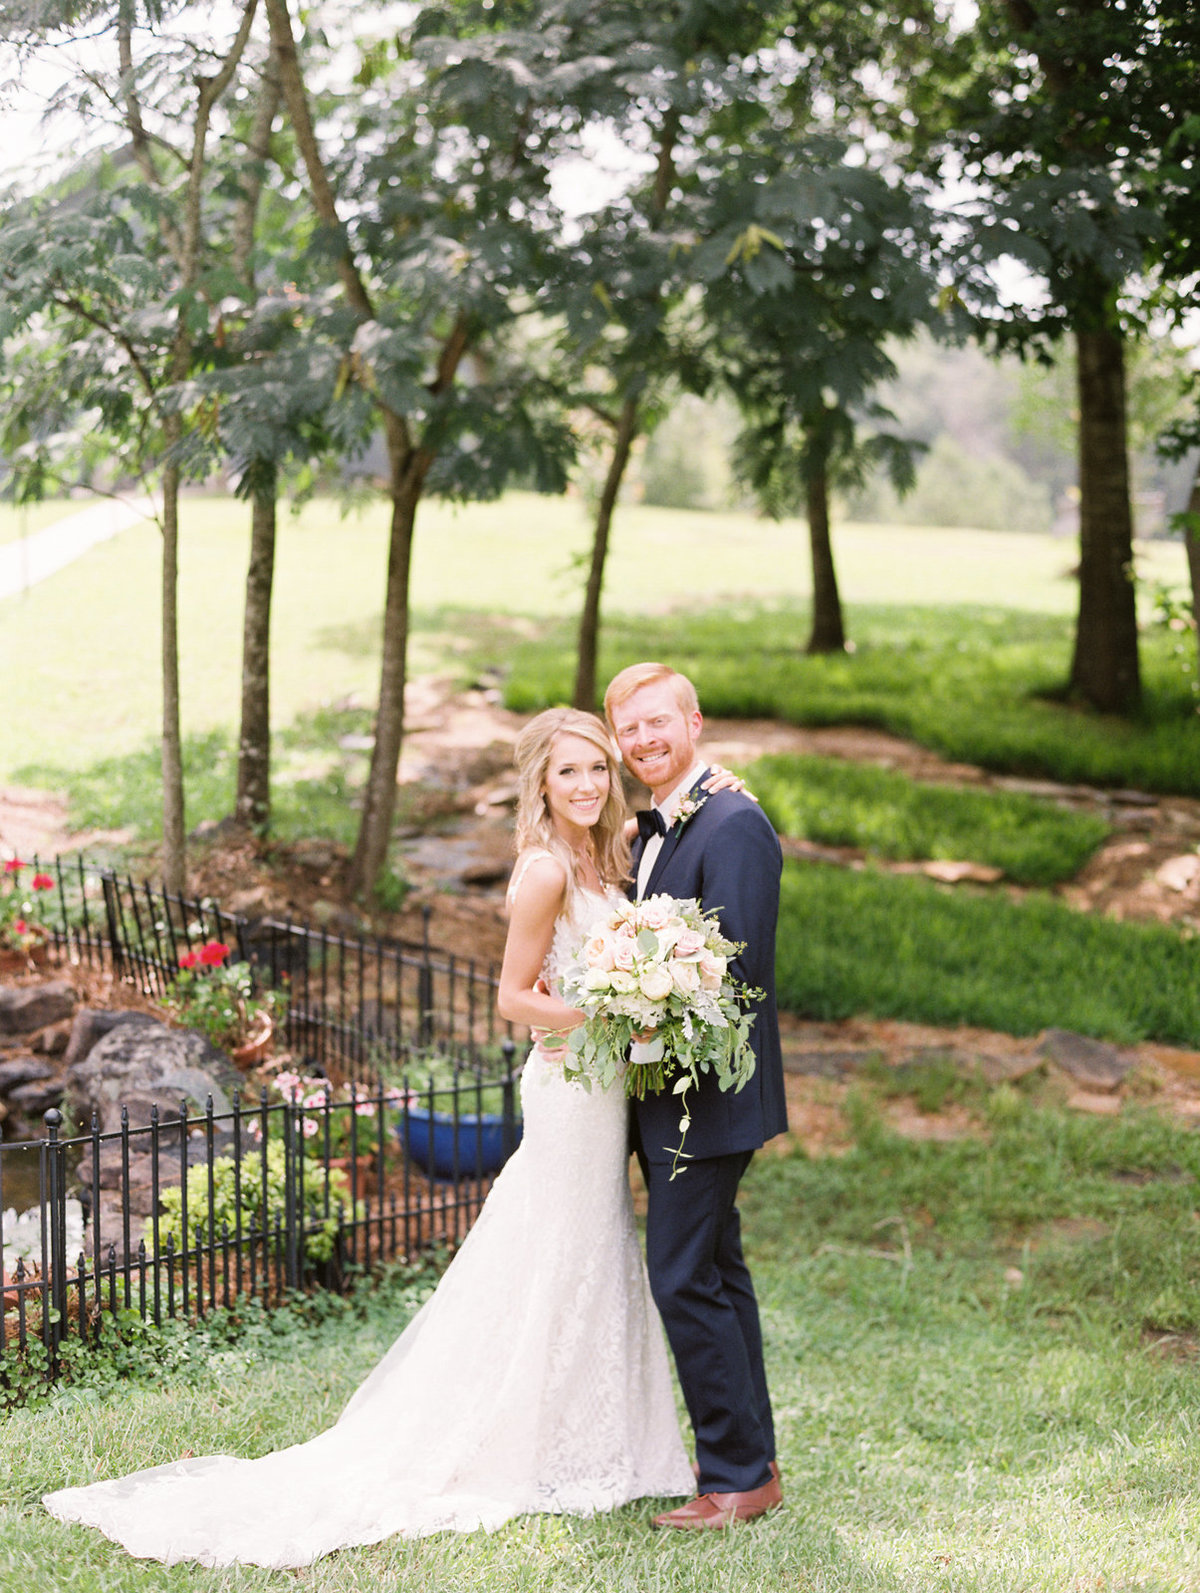 Sydney & William_Lindsay Ott Photography-131